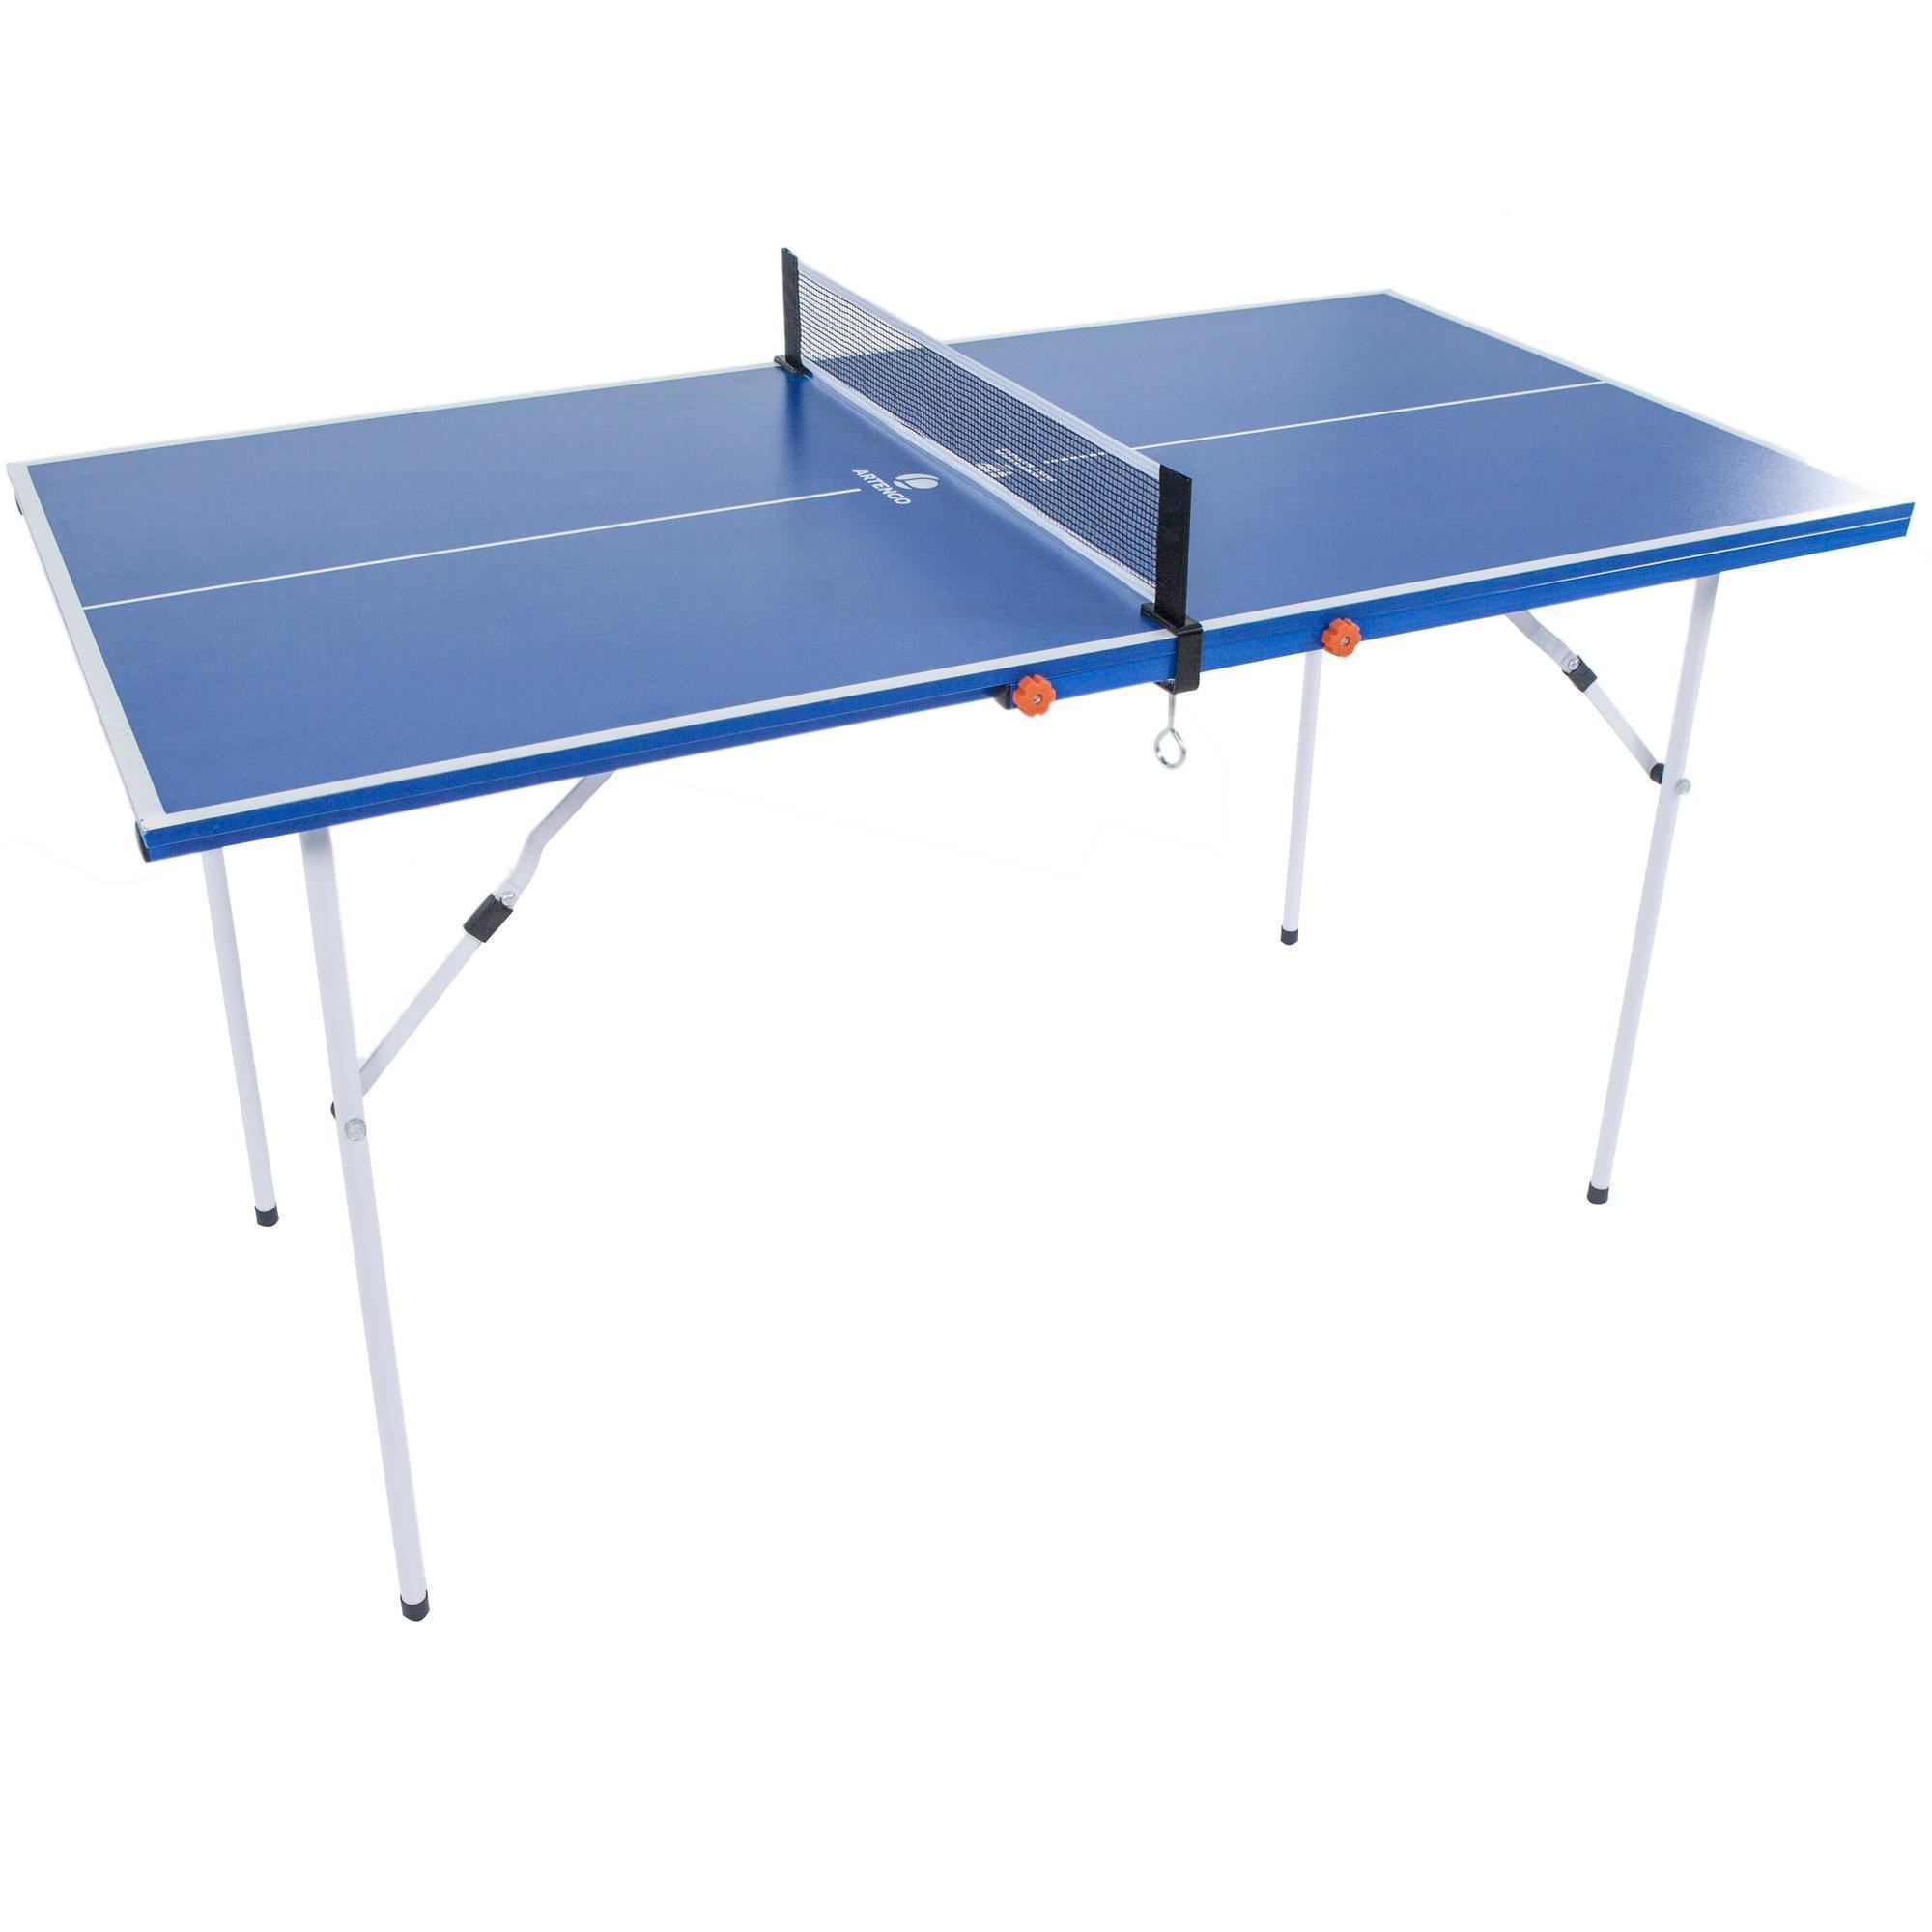 Minimesa ft ping pong artengo - Table de ping pong exterieur decathlon ...